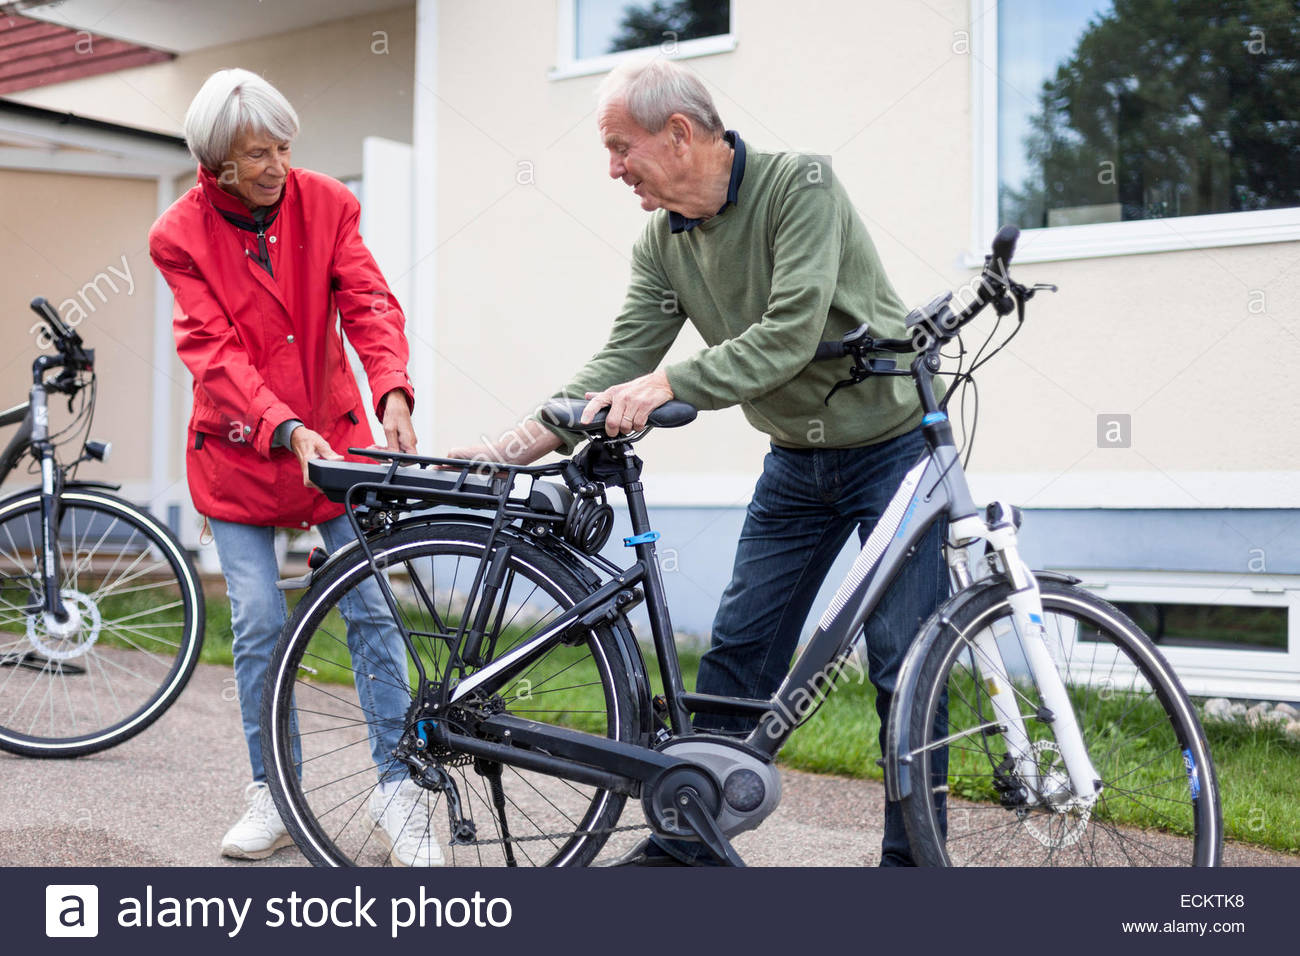 Senior couple inserting battery in backseat of electric bicycle outside house - Stock Image